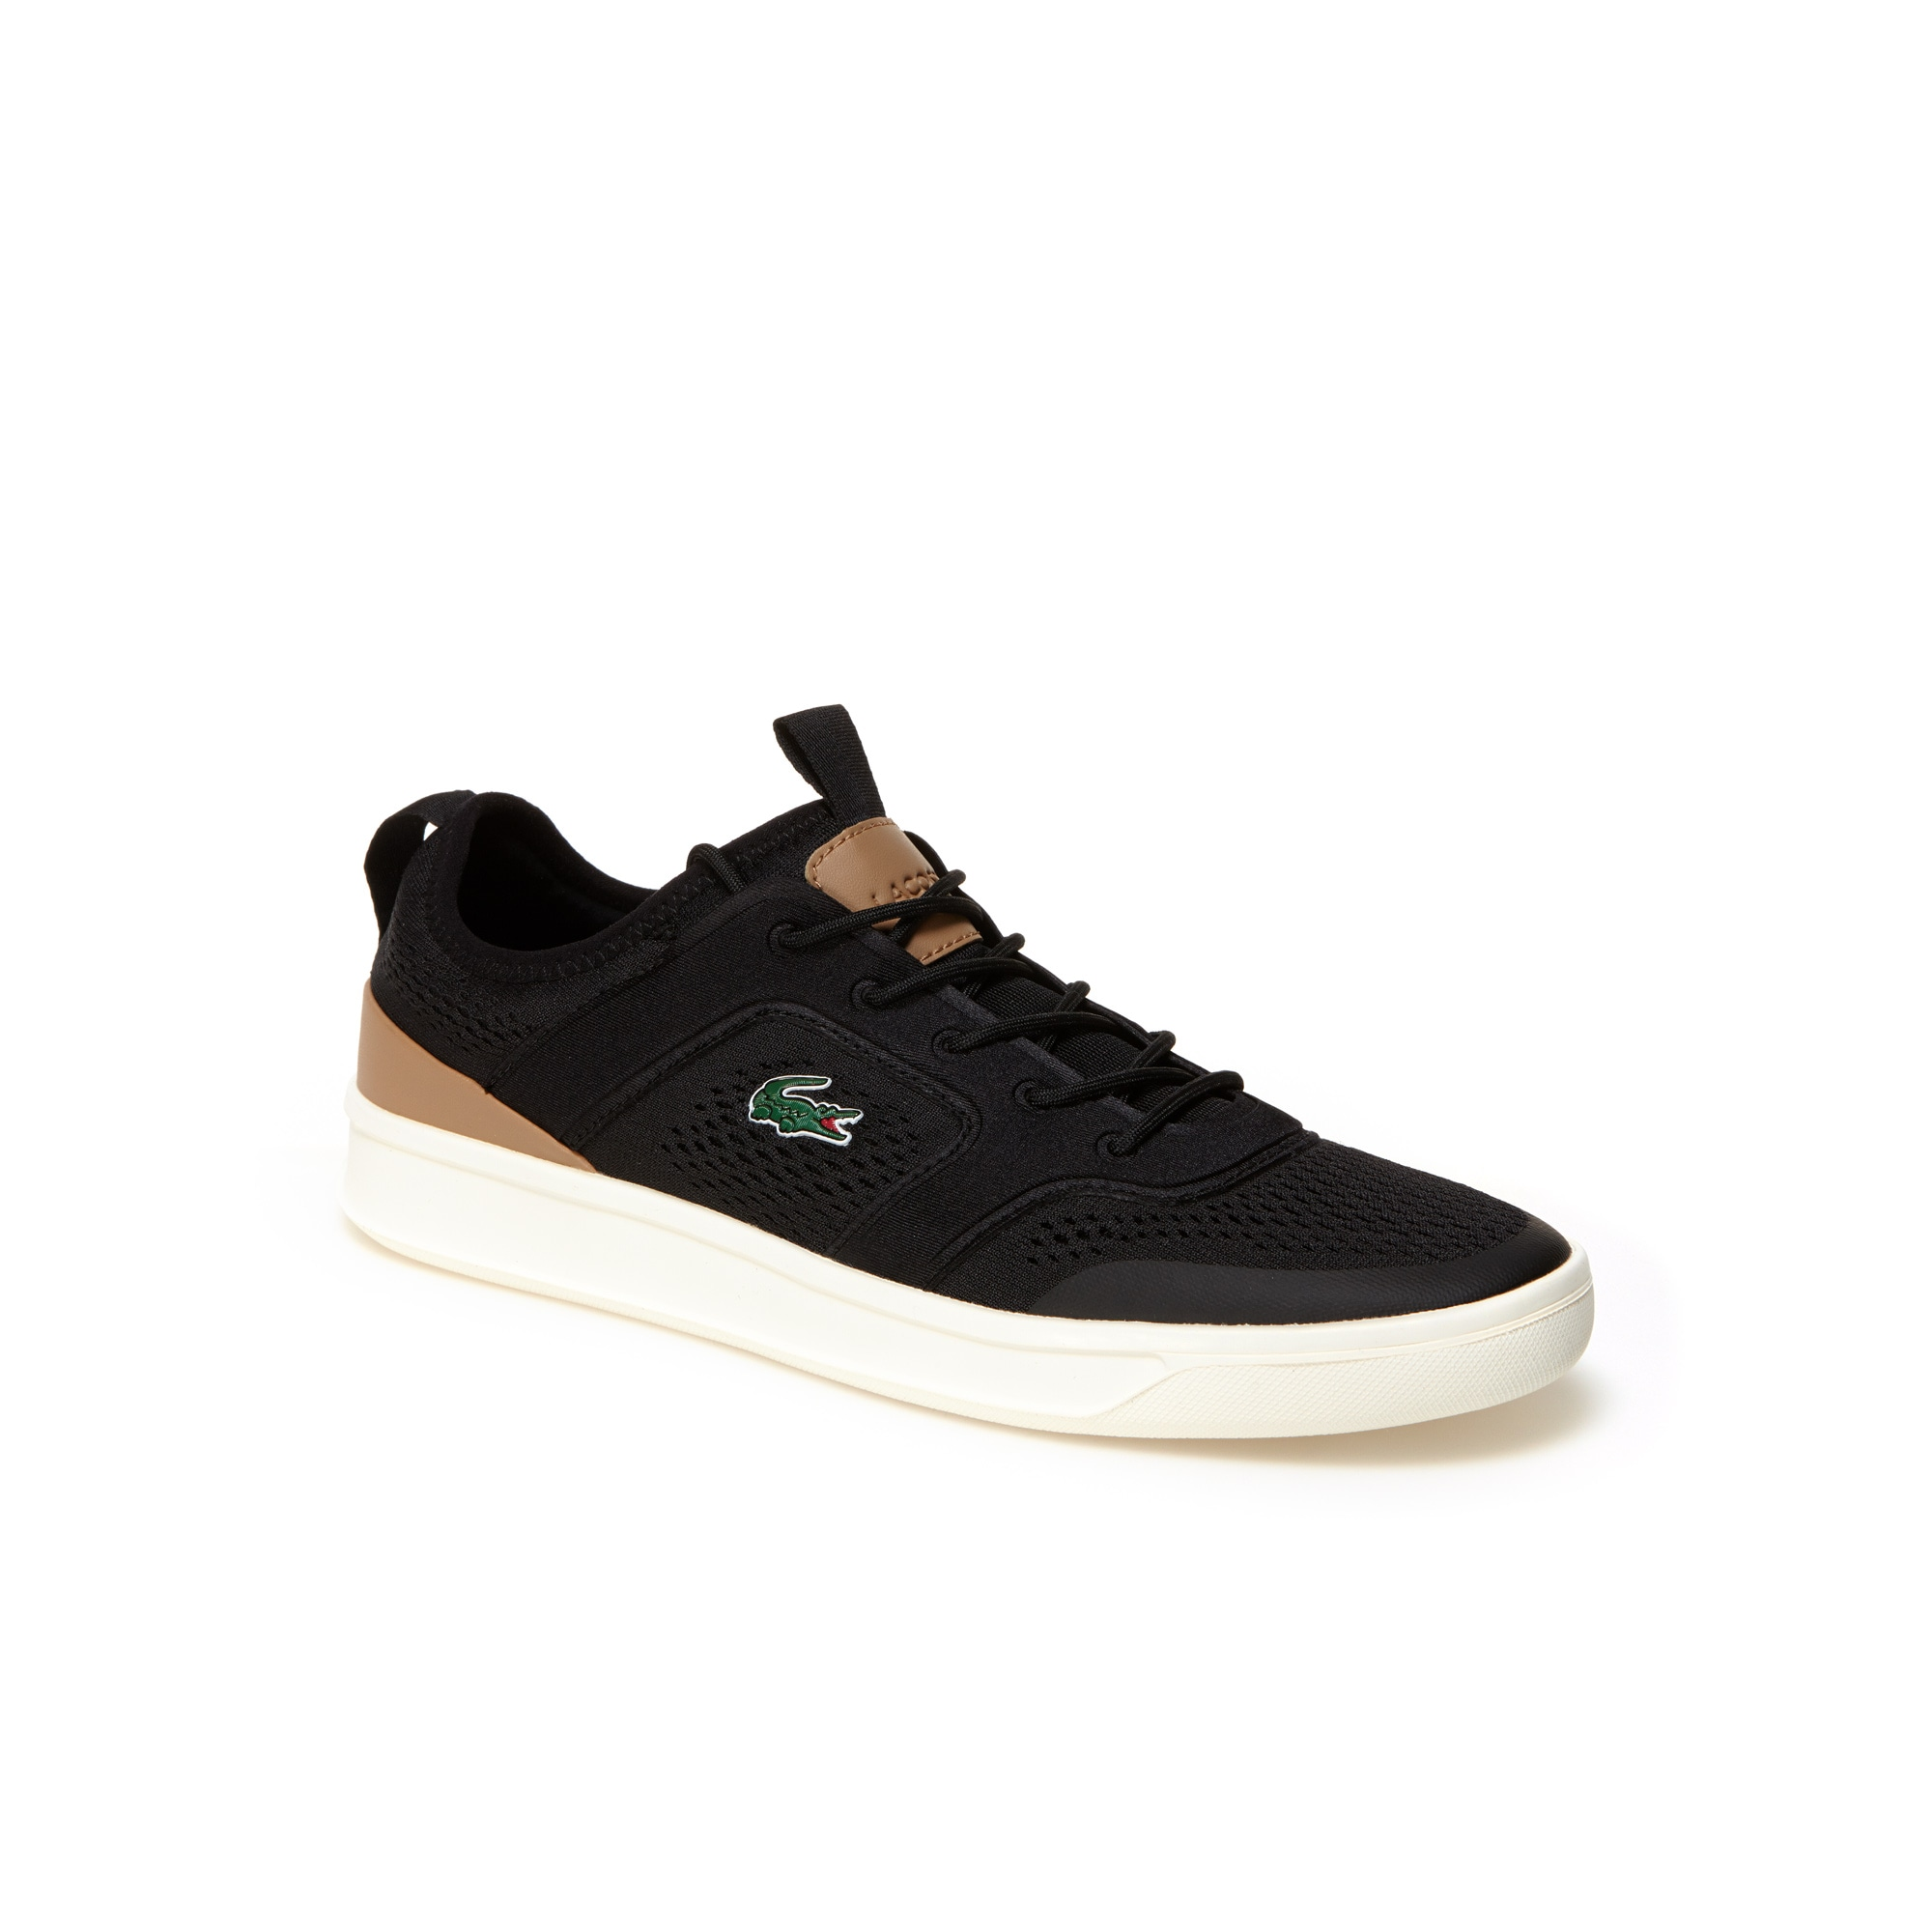 Men's Explorateur Light Textile Sneakers by Lacoste